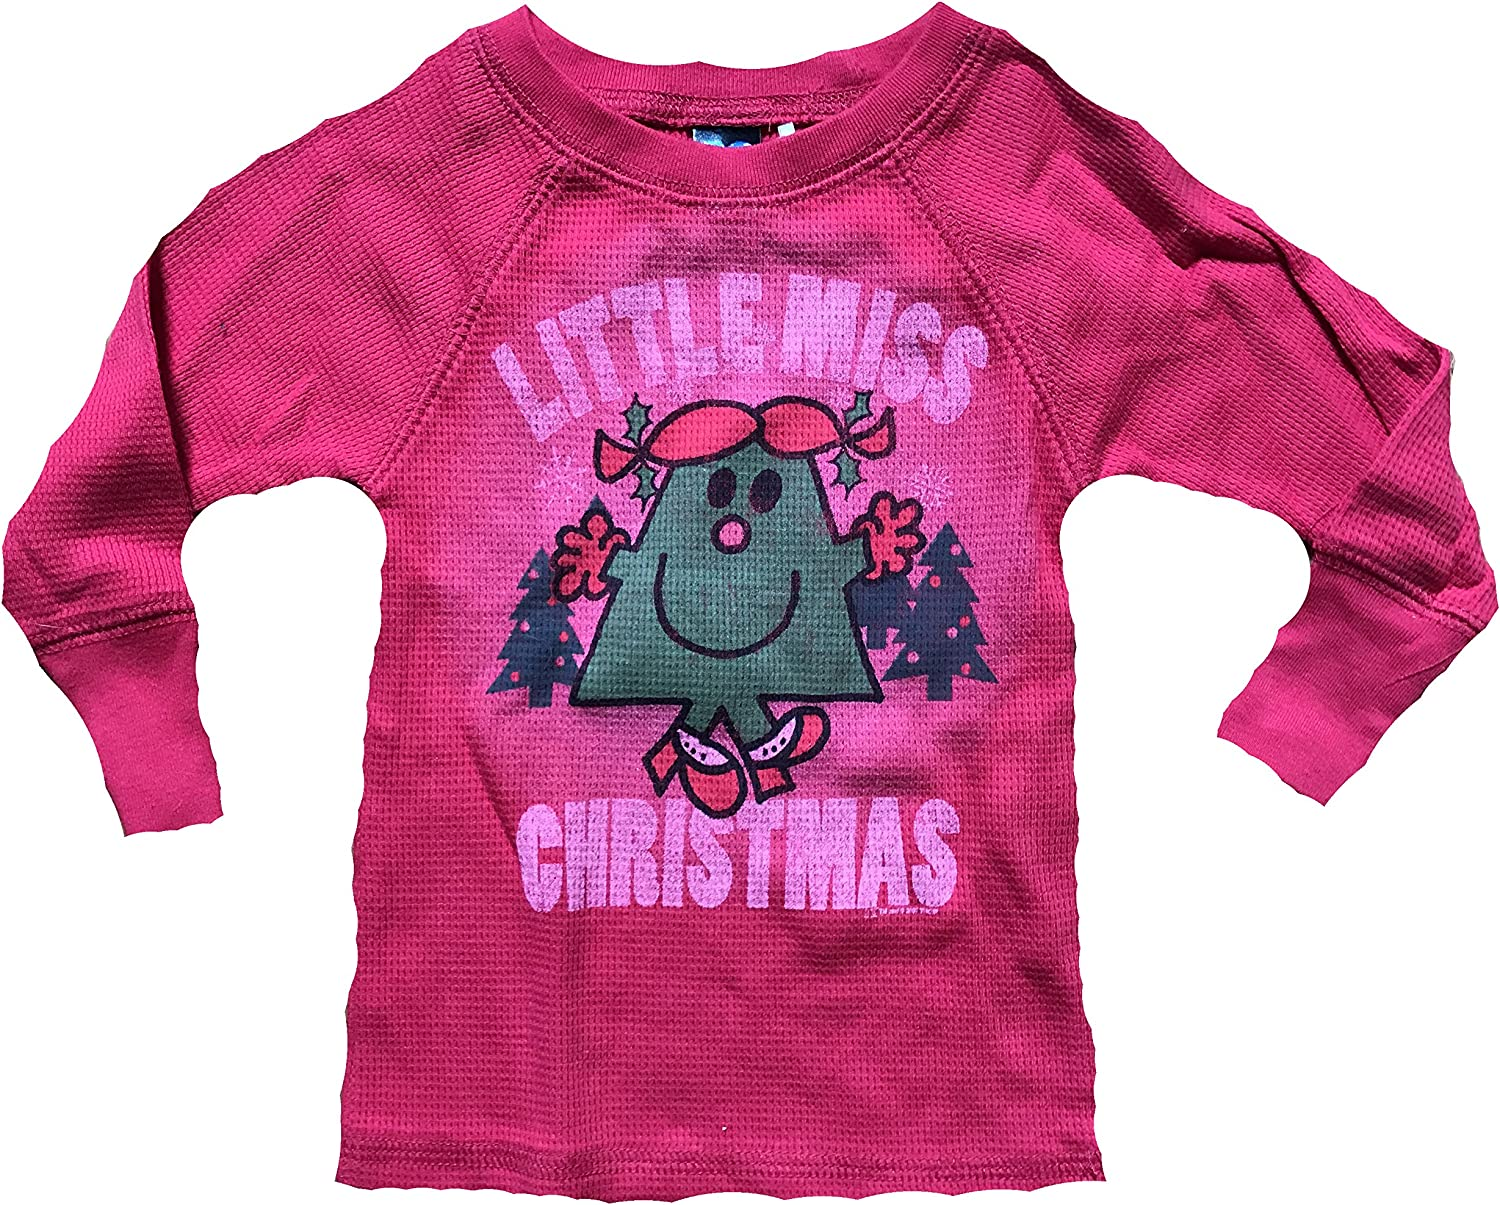 Junk Food Little Miss Christmas Infant Thermal Shirt